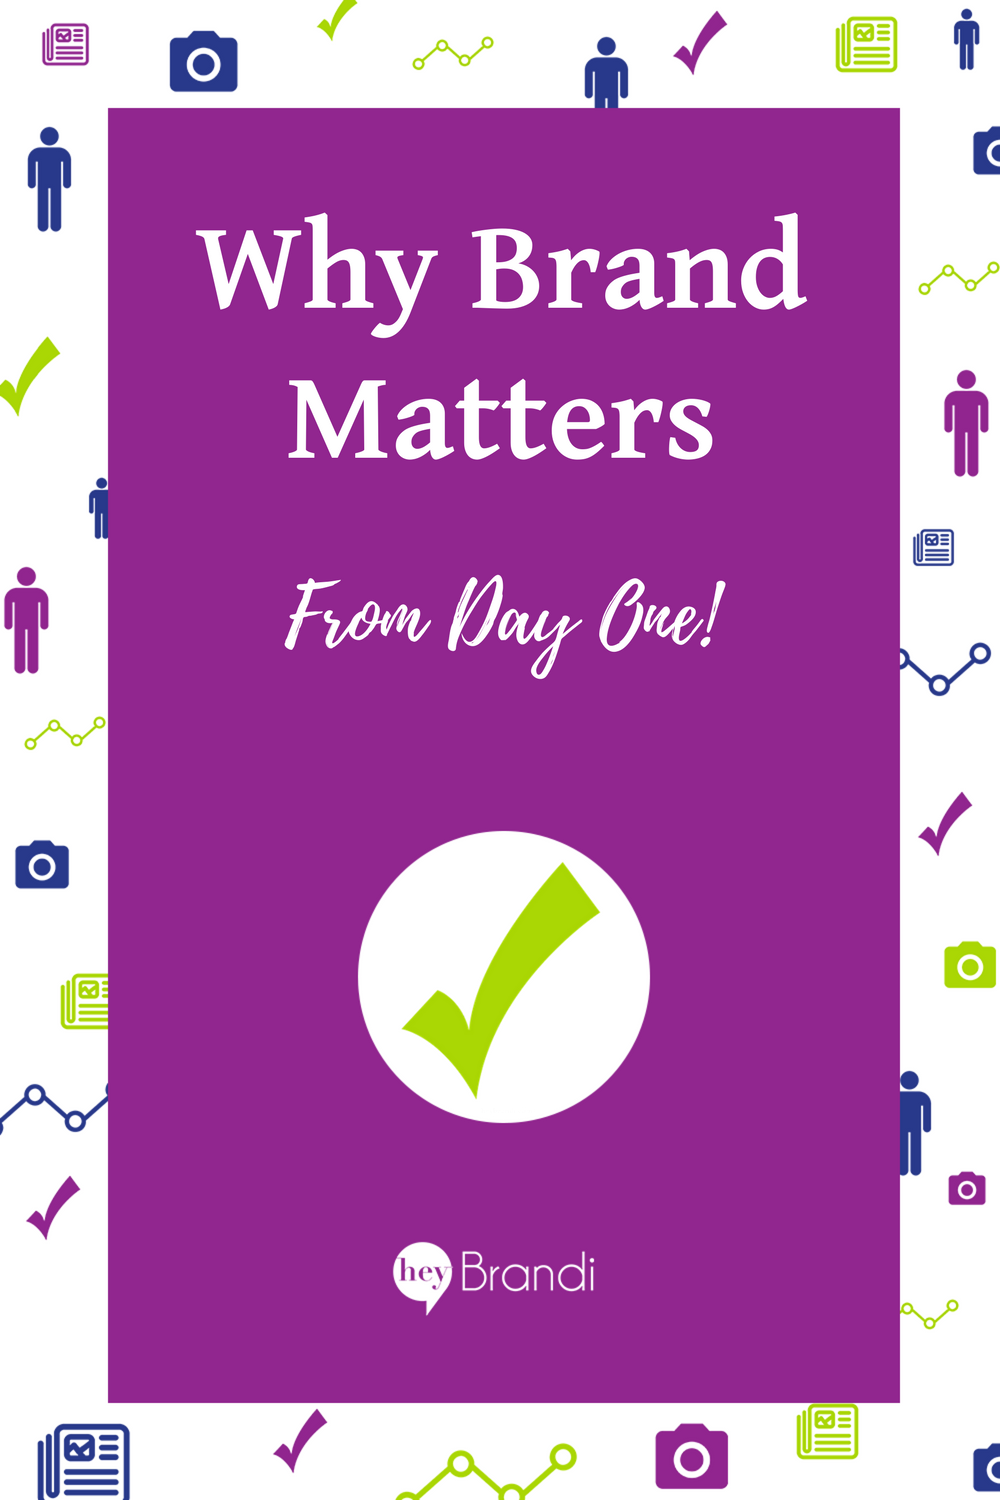 Brand is the promise that comes with your product or service. Managing your brand from day one is key to successful marketing